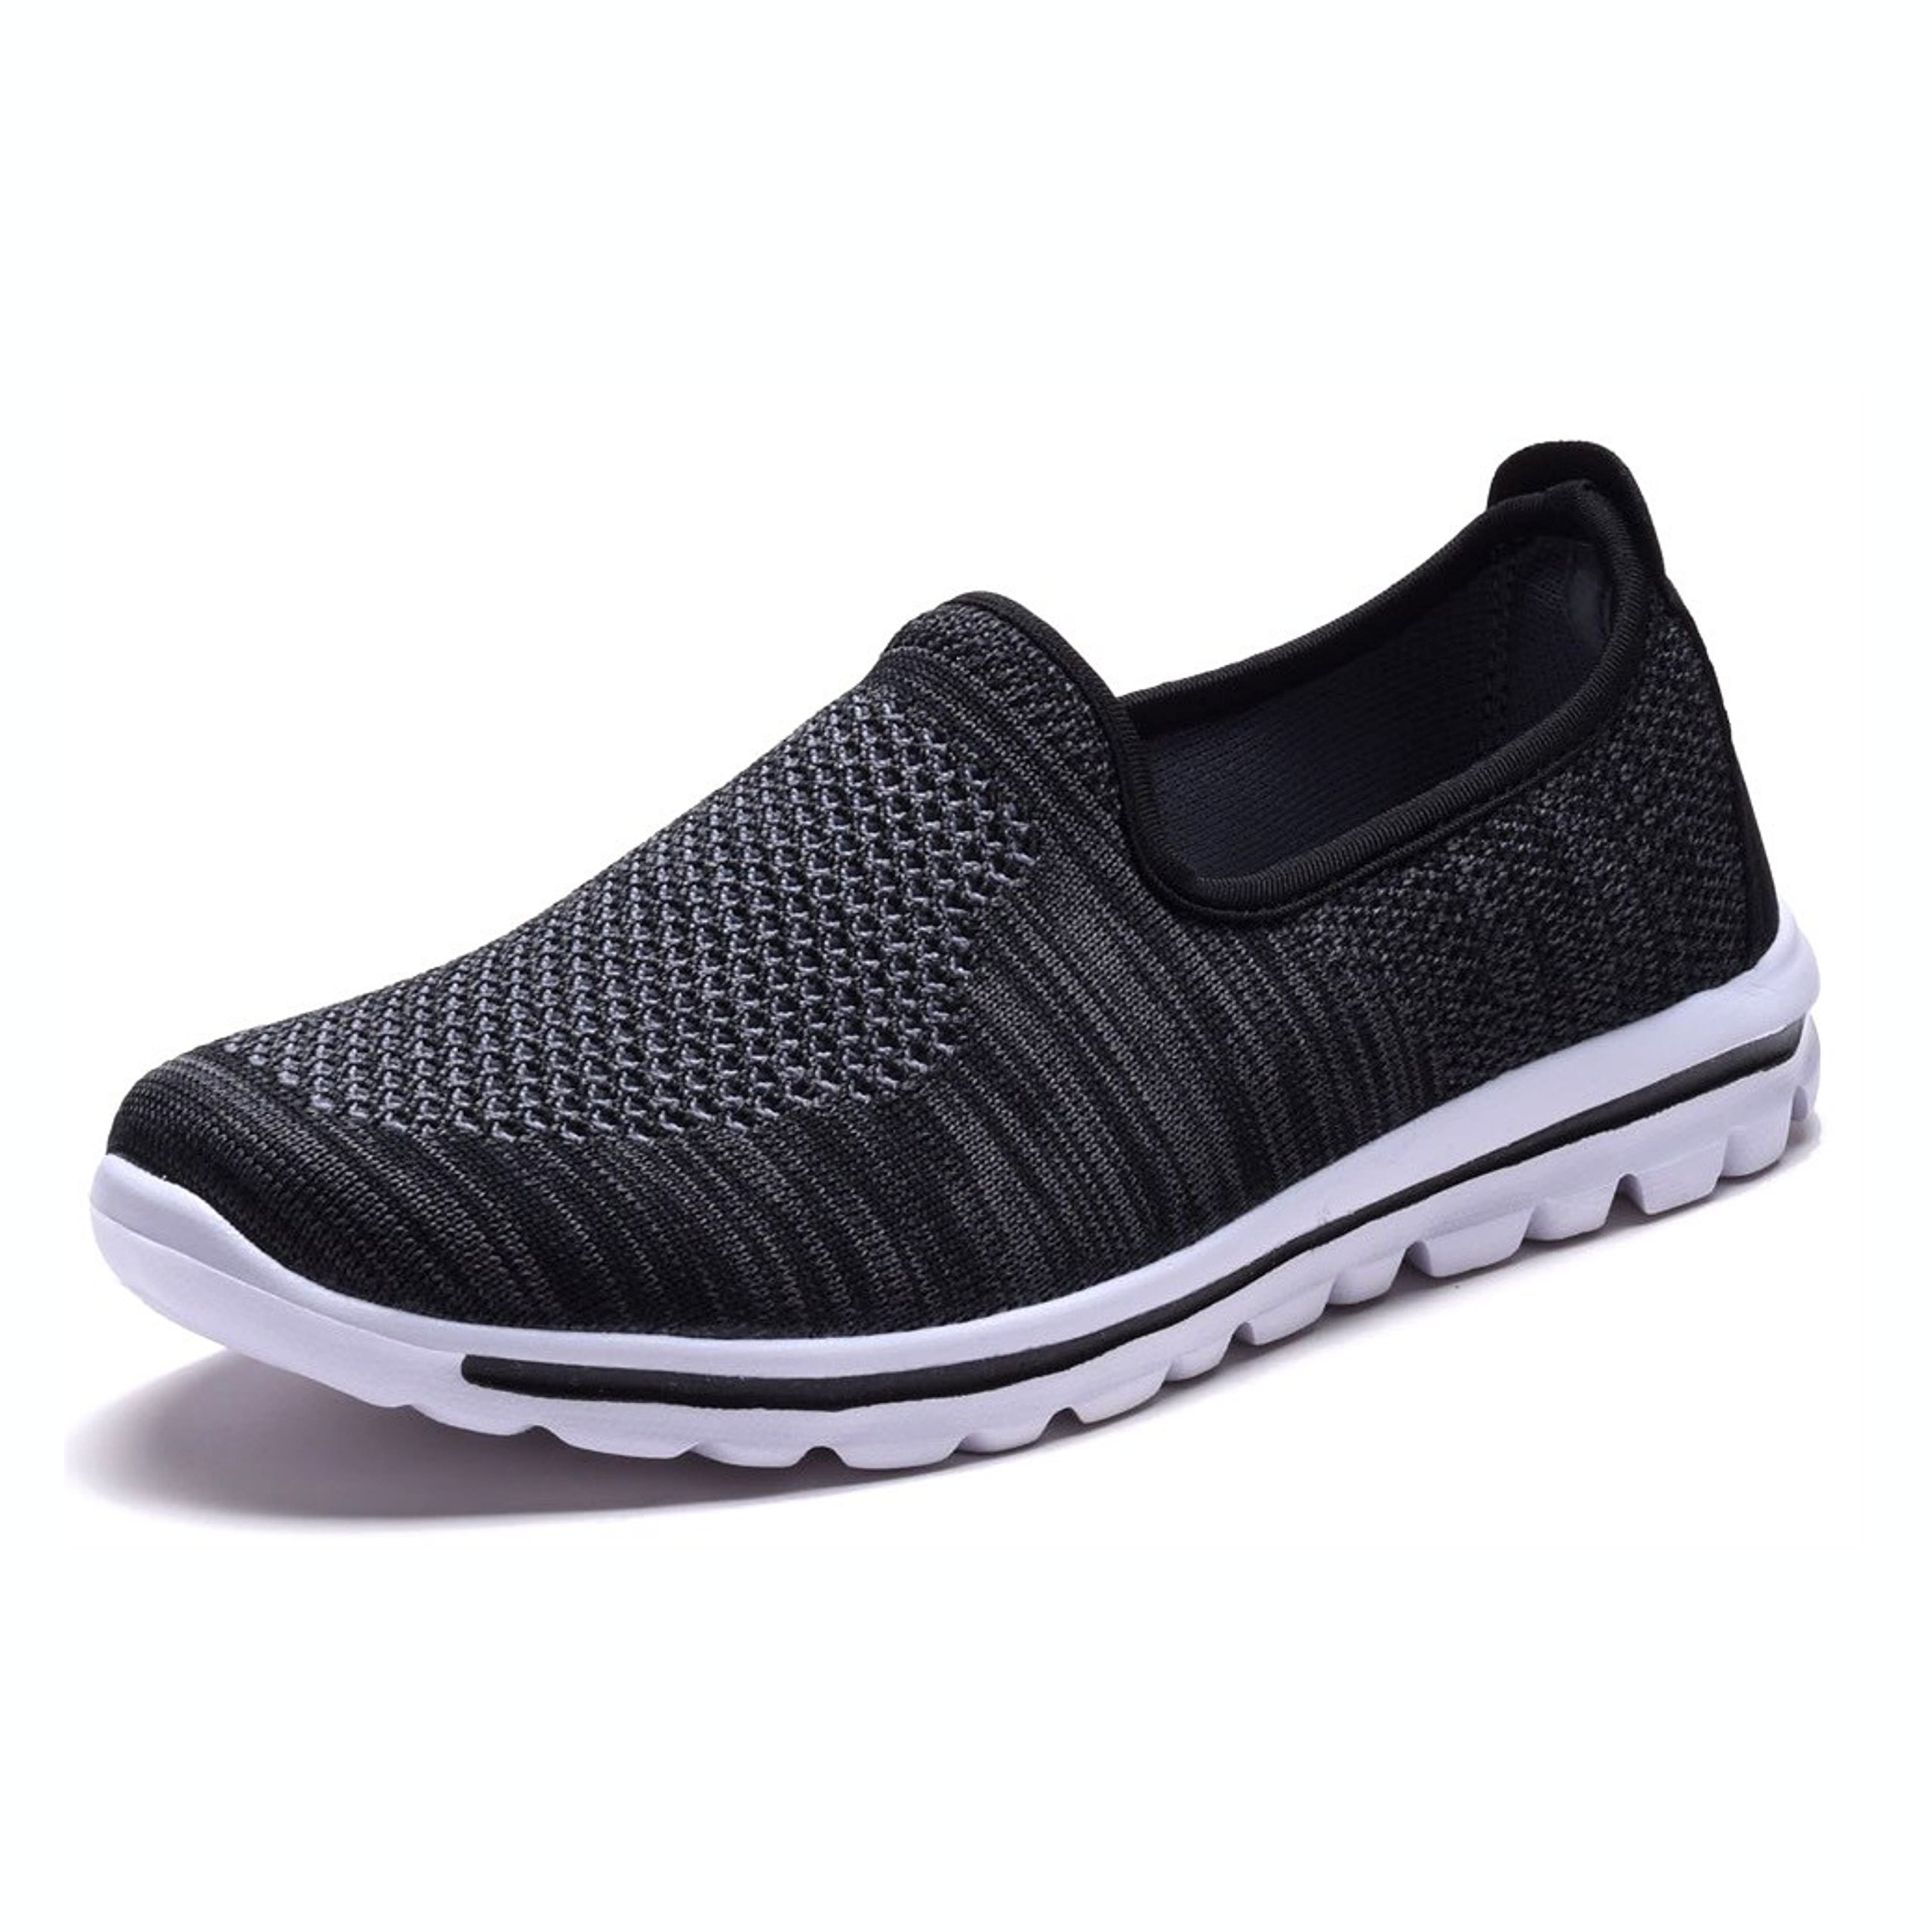 DailyShoes Women's Fit Mesh Slip-on Style Walking Shoes with Memory Foam Insoles- Breathable Mesh - Durable Soles - Reliable Traction - Perfect for Walks and Jogs, Black Mesh, 9 B(M) US